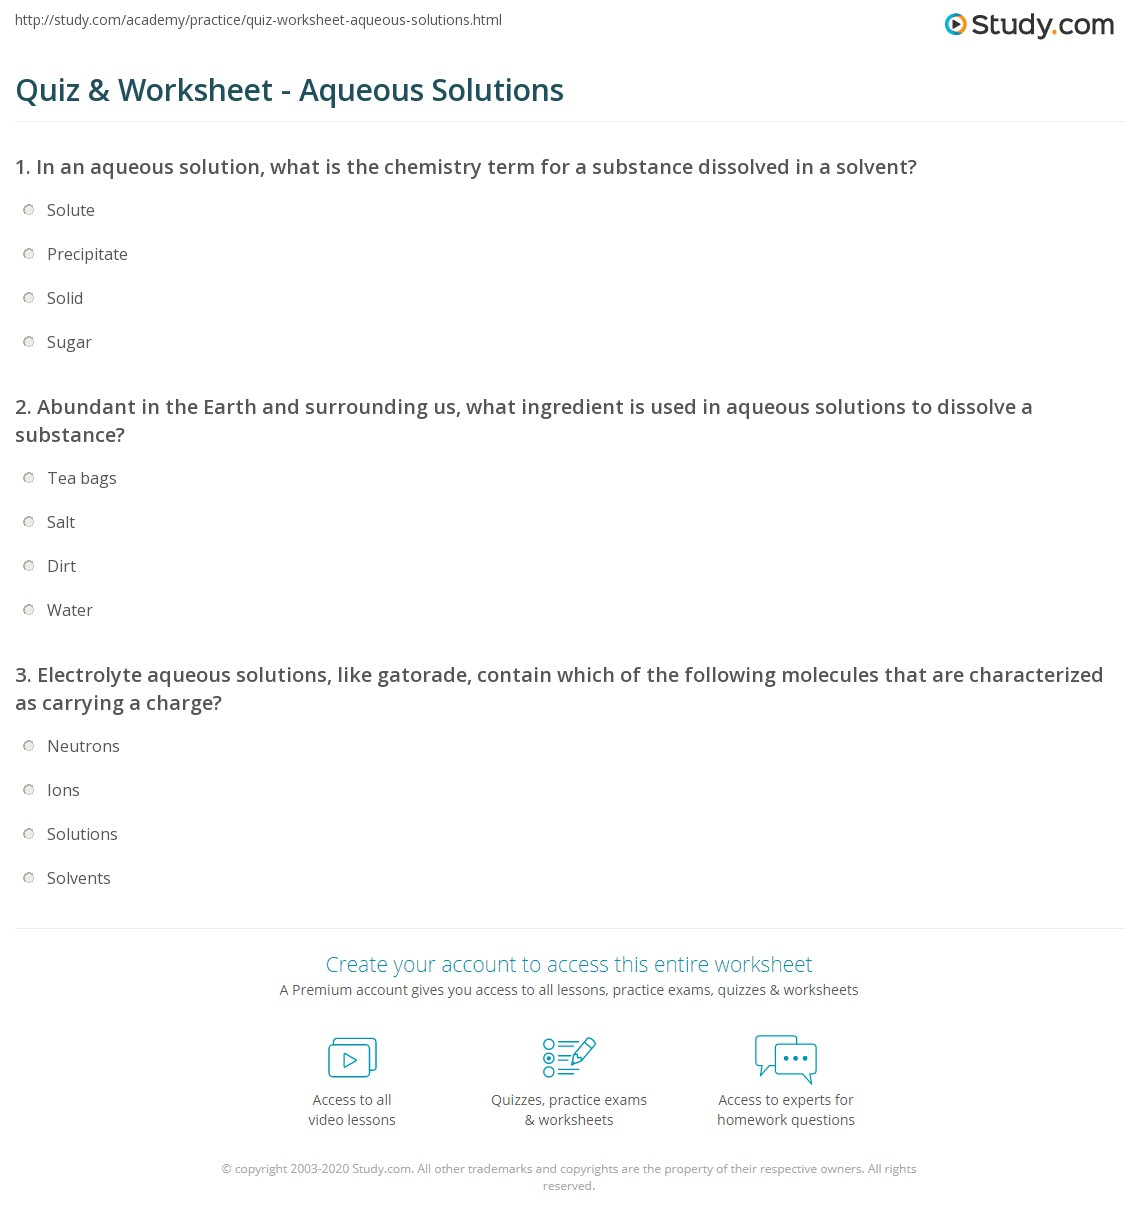 Quiz & Worksheet - Aqueous Solutions | Study.com